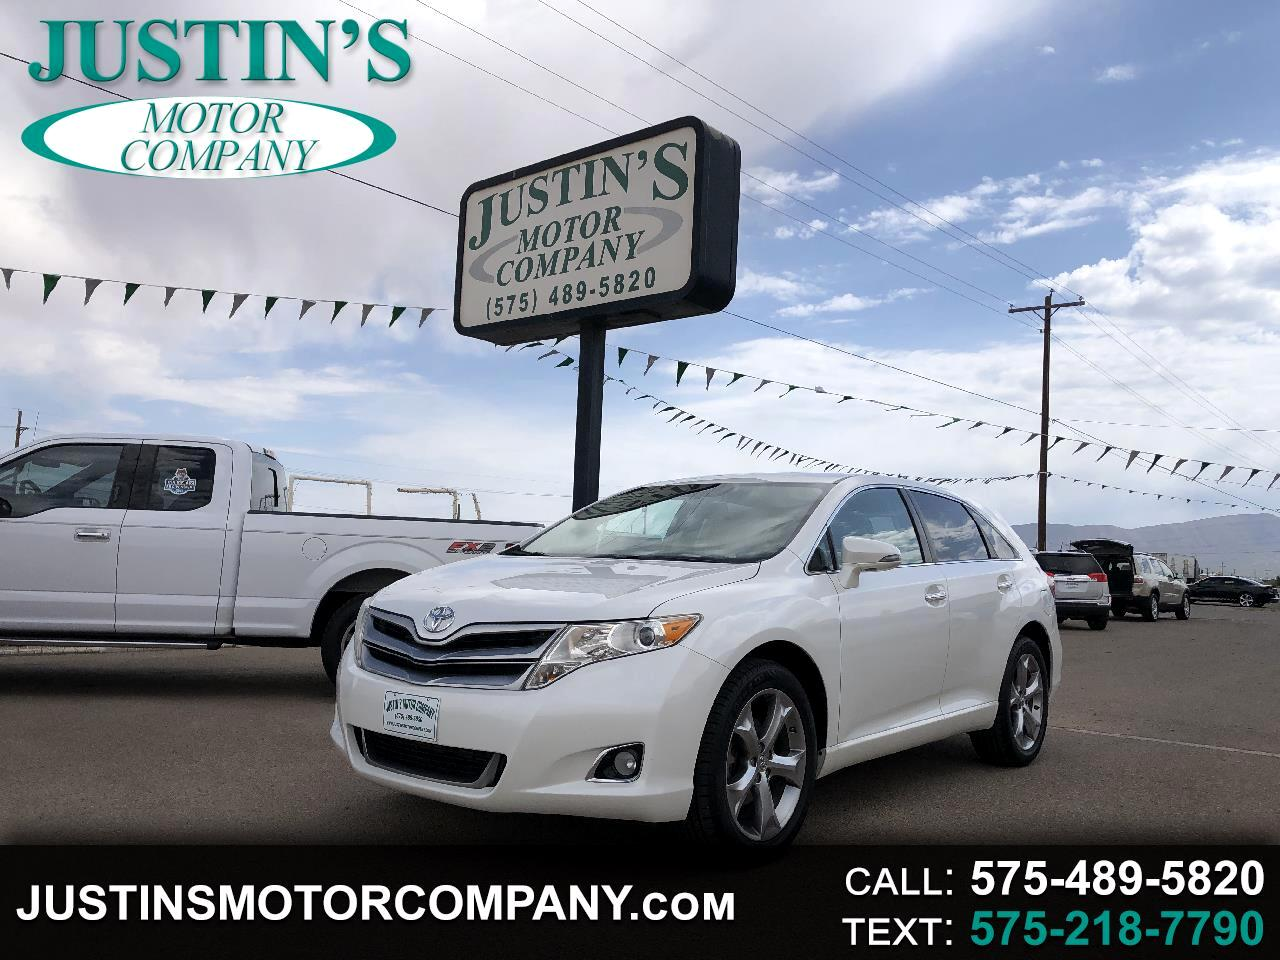 Toyota Venza 4dr Wgn V6 AWD Limited (Natl) 2014